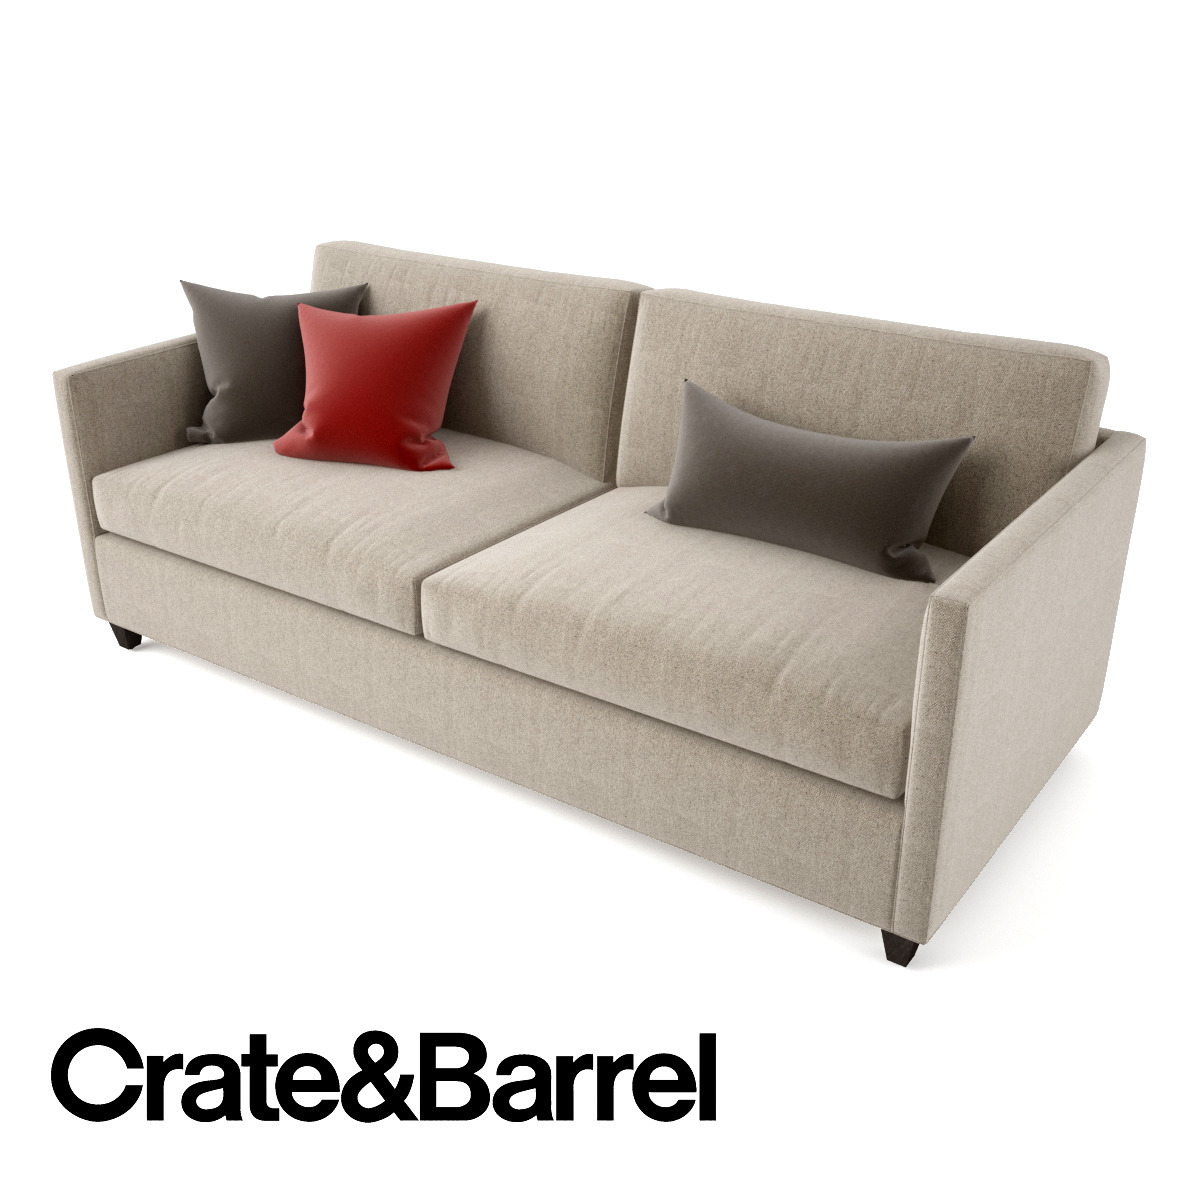 crate and barrel dryden apartment sofa by emp otu 3docean. Black Bedroom Furniture Sets. Home Design Ideas